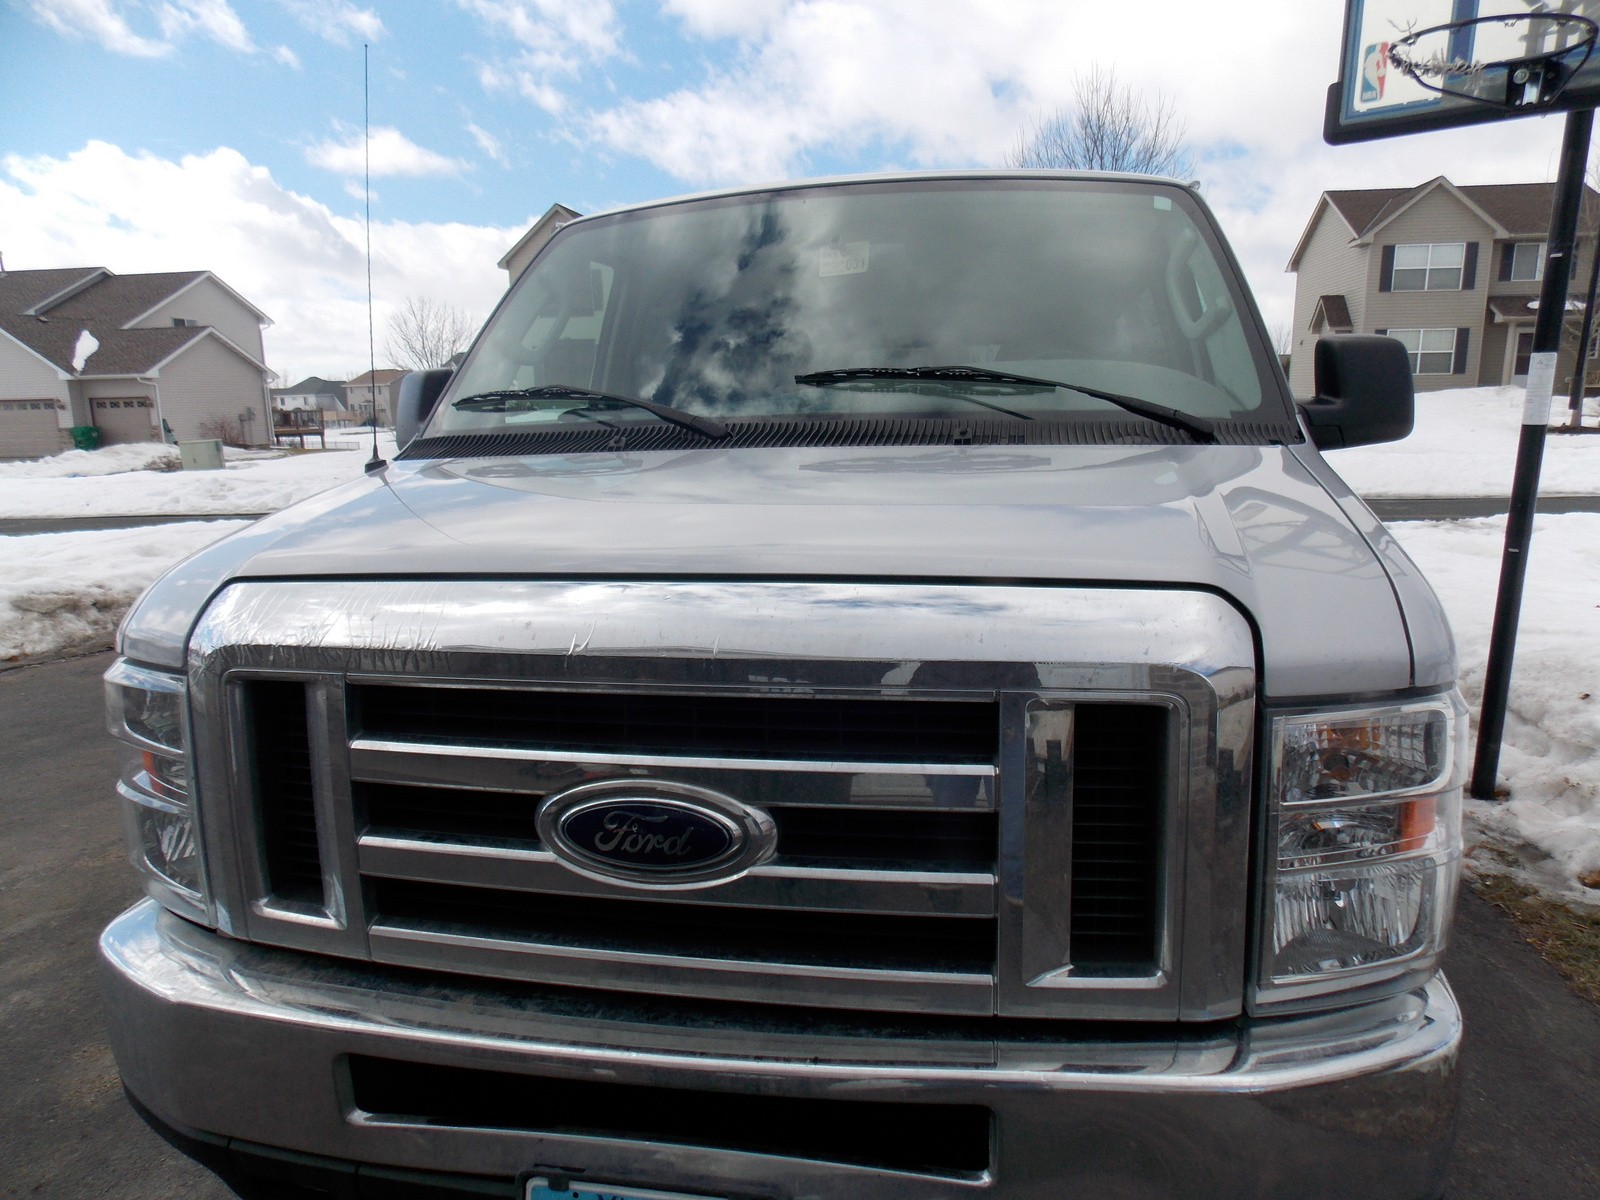 2008 Ford E-Series Passenger